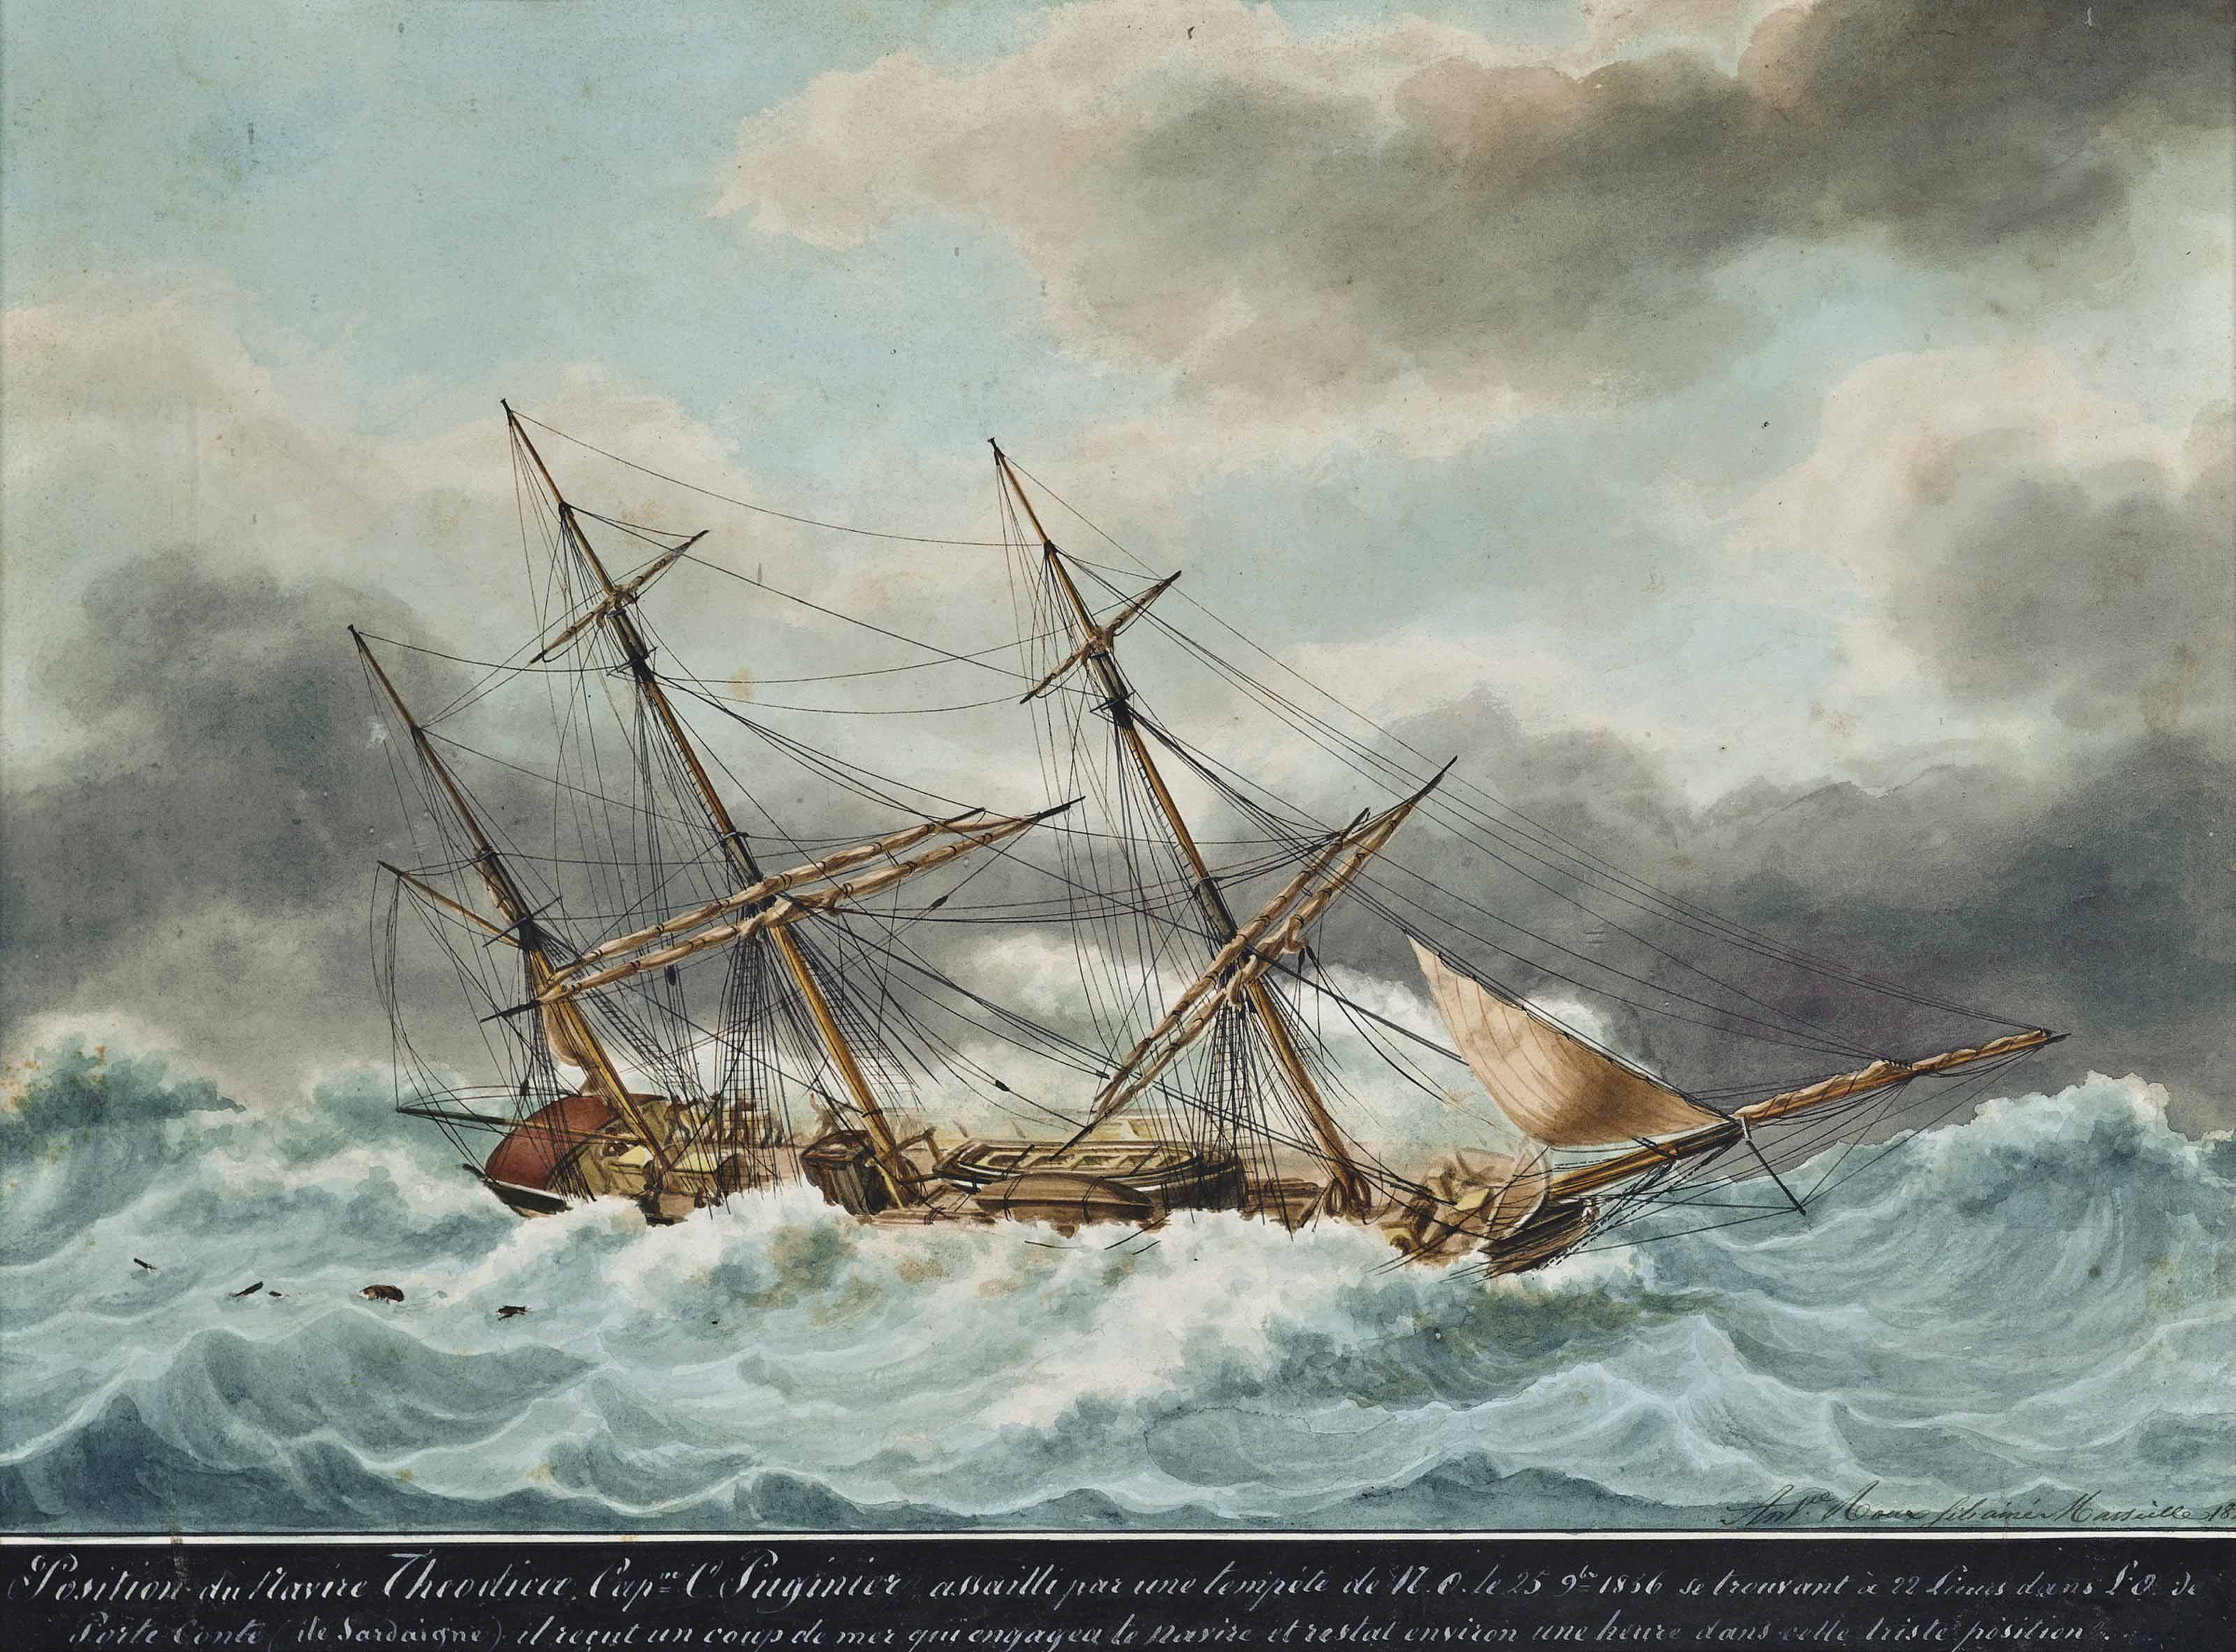 The French barque Theodicee in a gale off the Island off Sardinia